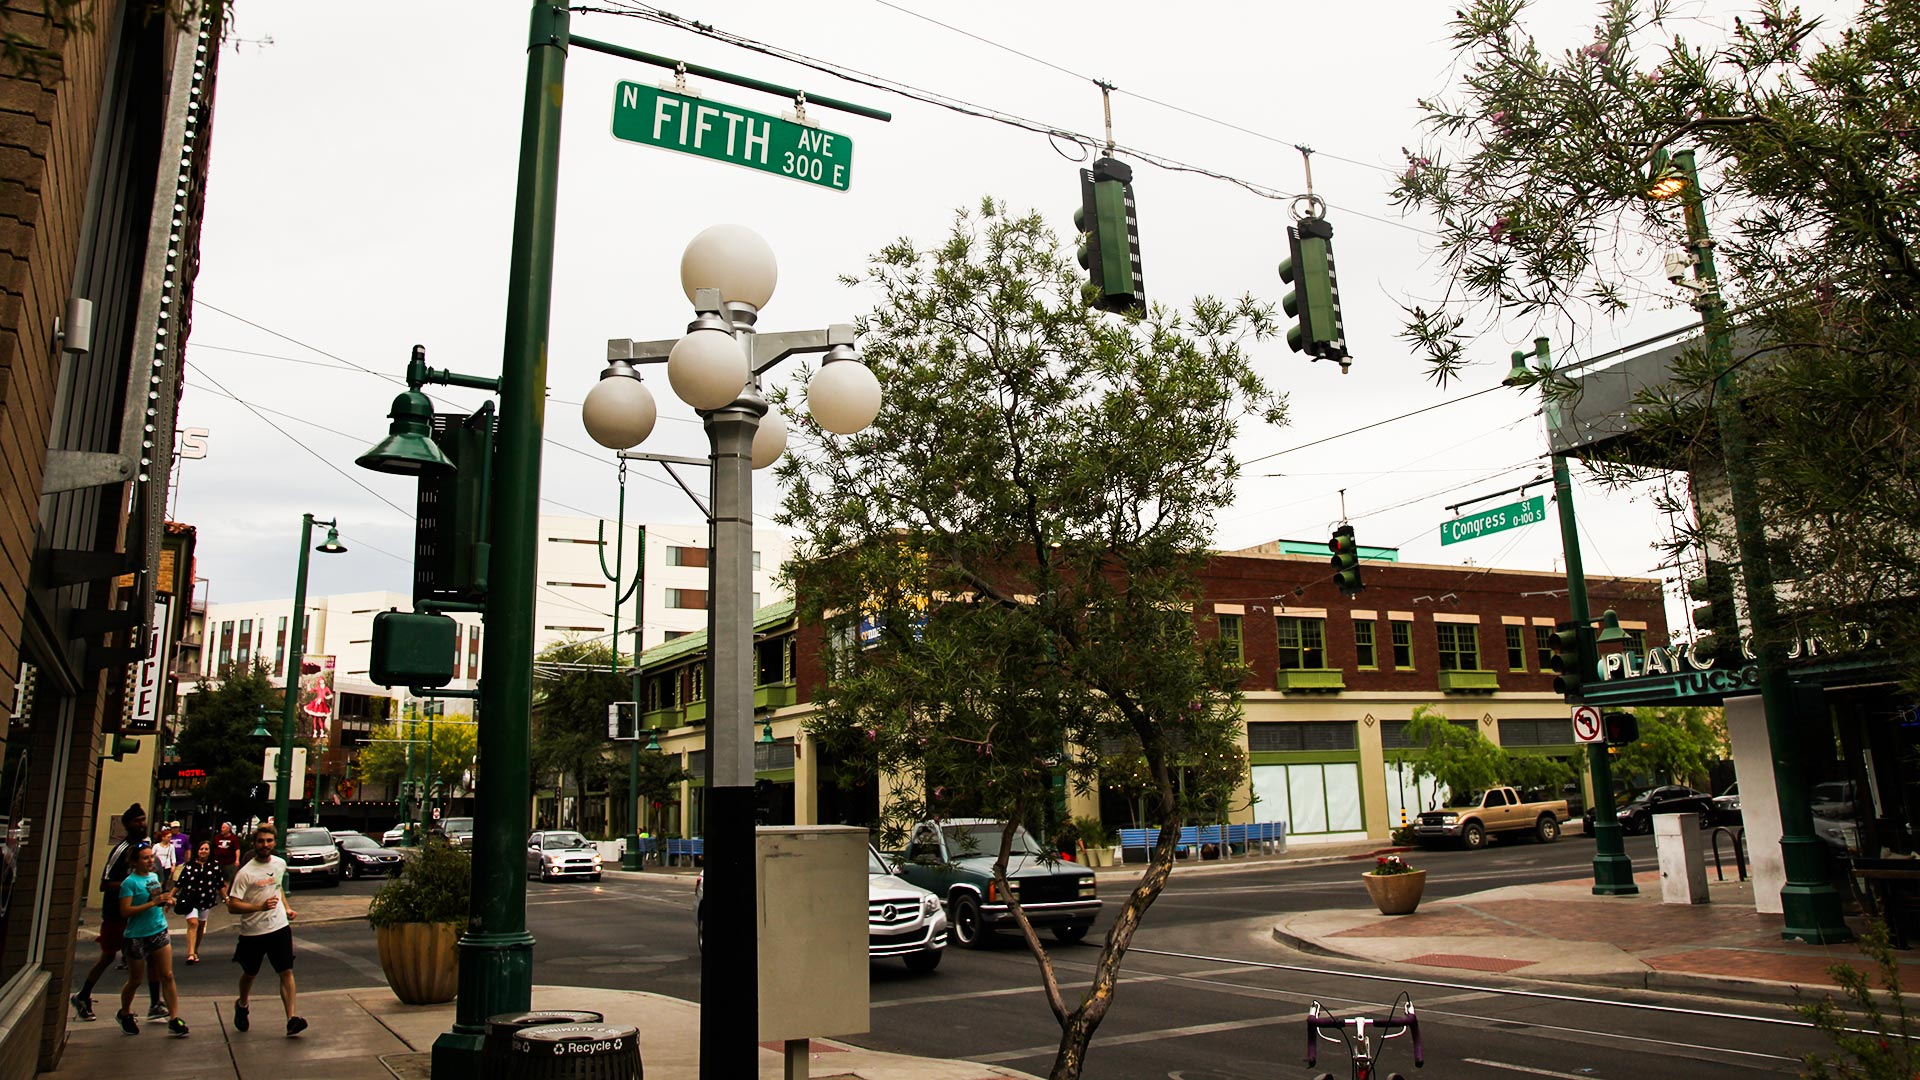 The intersection of Fifth Ave. and Congress Street in downtown Tucson.